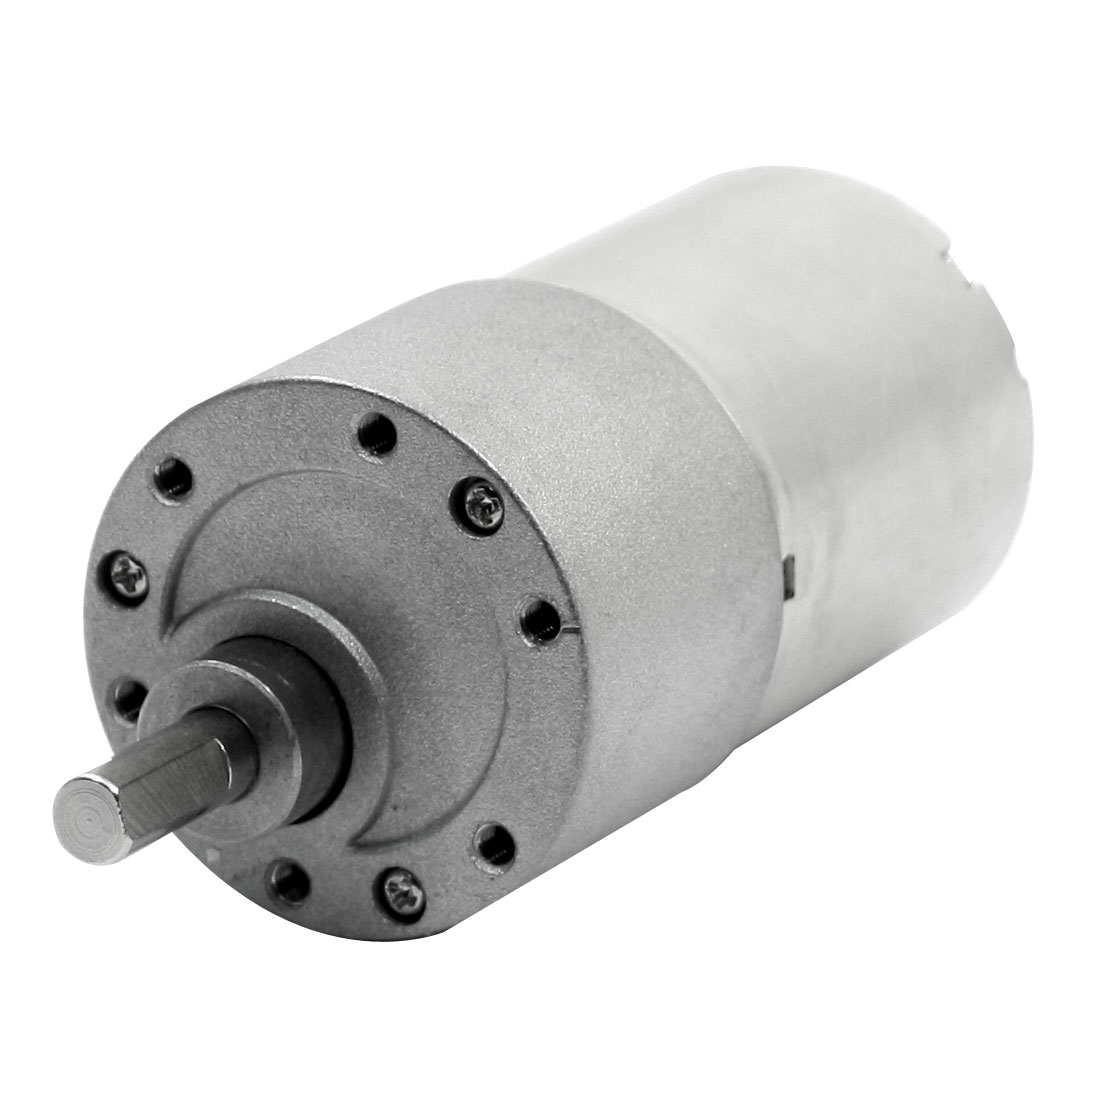 6mm x 15mm Shaft 46 r/min Output Rotary Speed Reducer Connecting Cylindrical High Torque Gear Motor DC24V